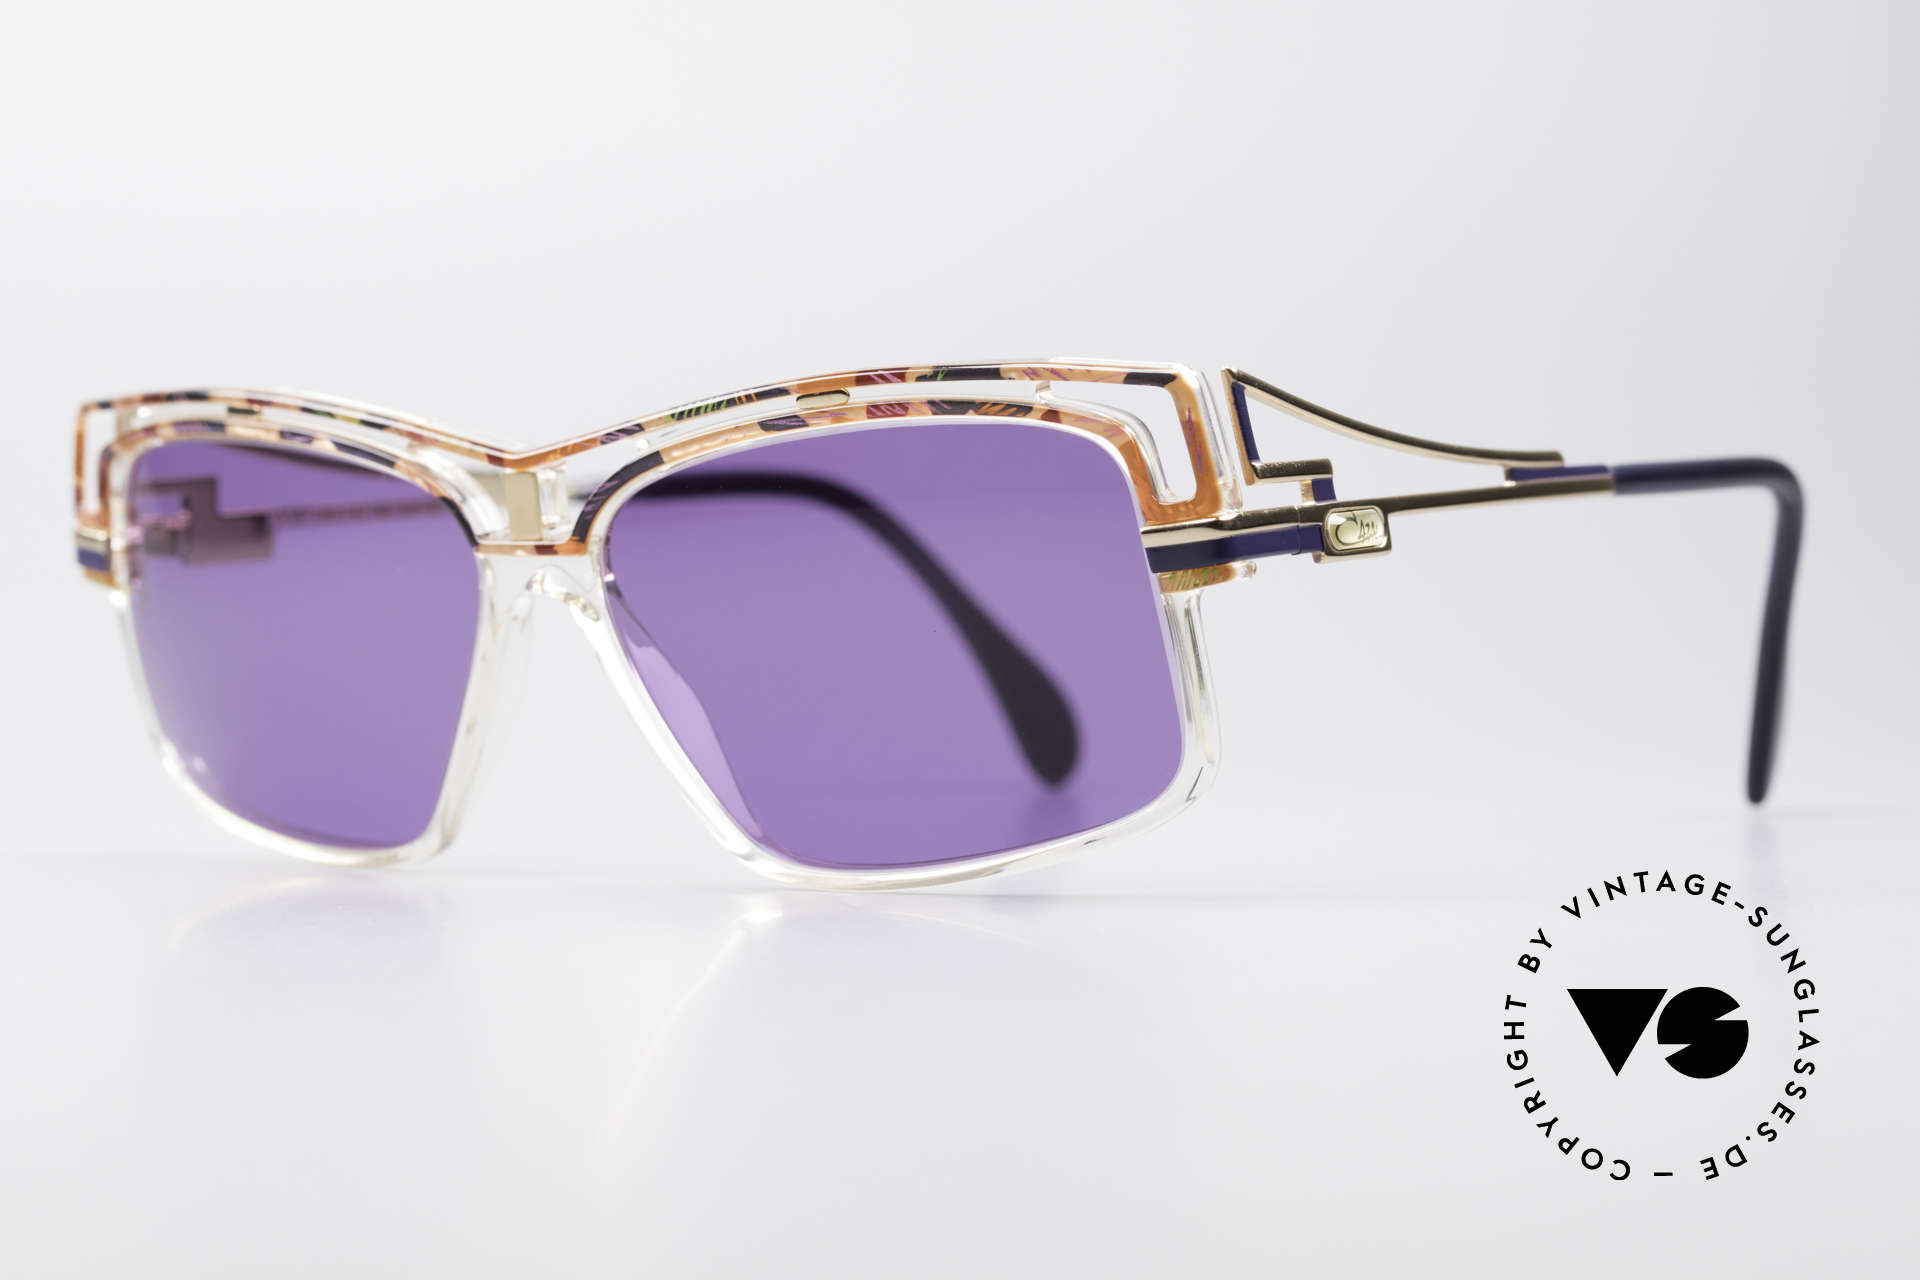 Cazal 365 Old School Hip Hop Cazal 90's, distinctive CAZAL; true vintage 90's HIP HOP frame, Made for Men and Women